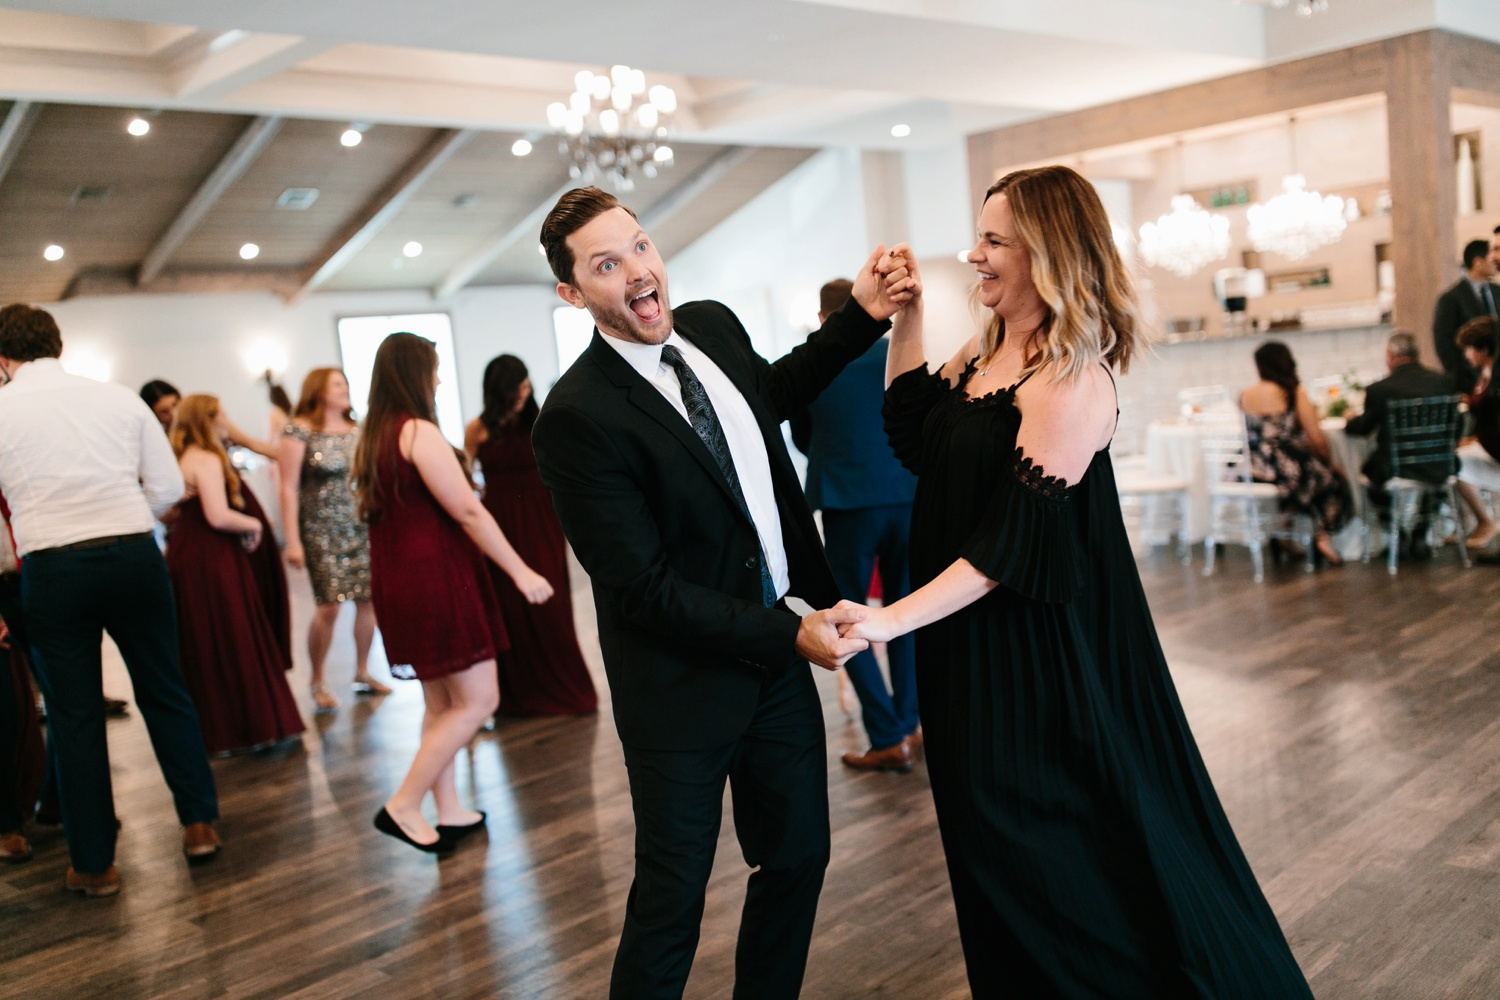 Grant + Lysette | a vibrant, deep burgundy and navy, and mixed metals wedding at Hidden Pines Chapel by North Texas Wedding Photographer Rachel Meagan Photography 164